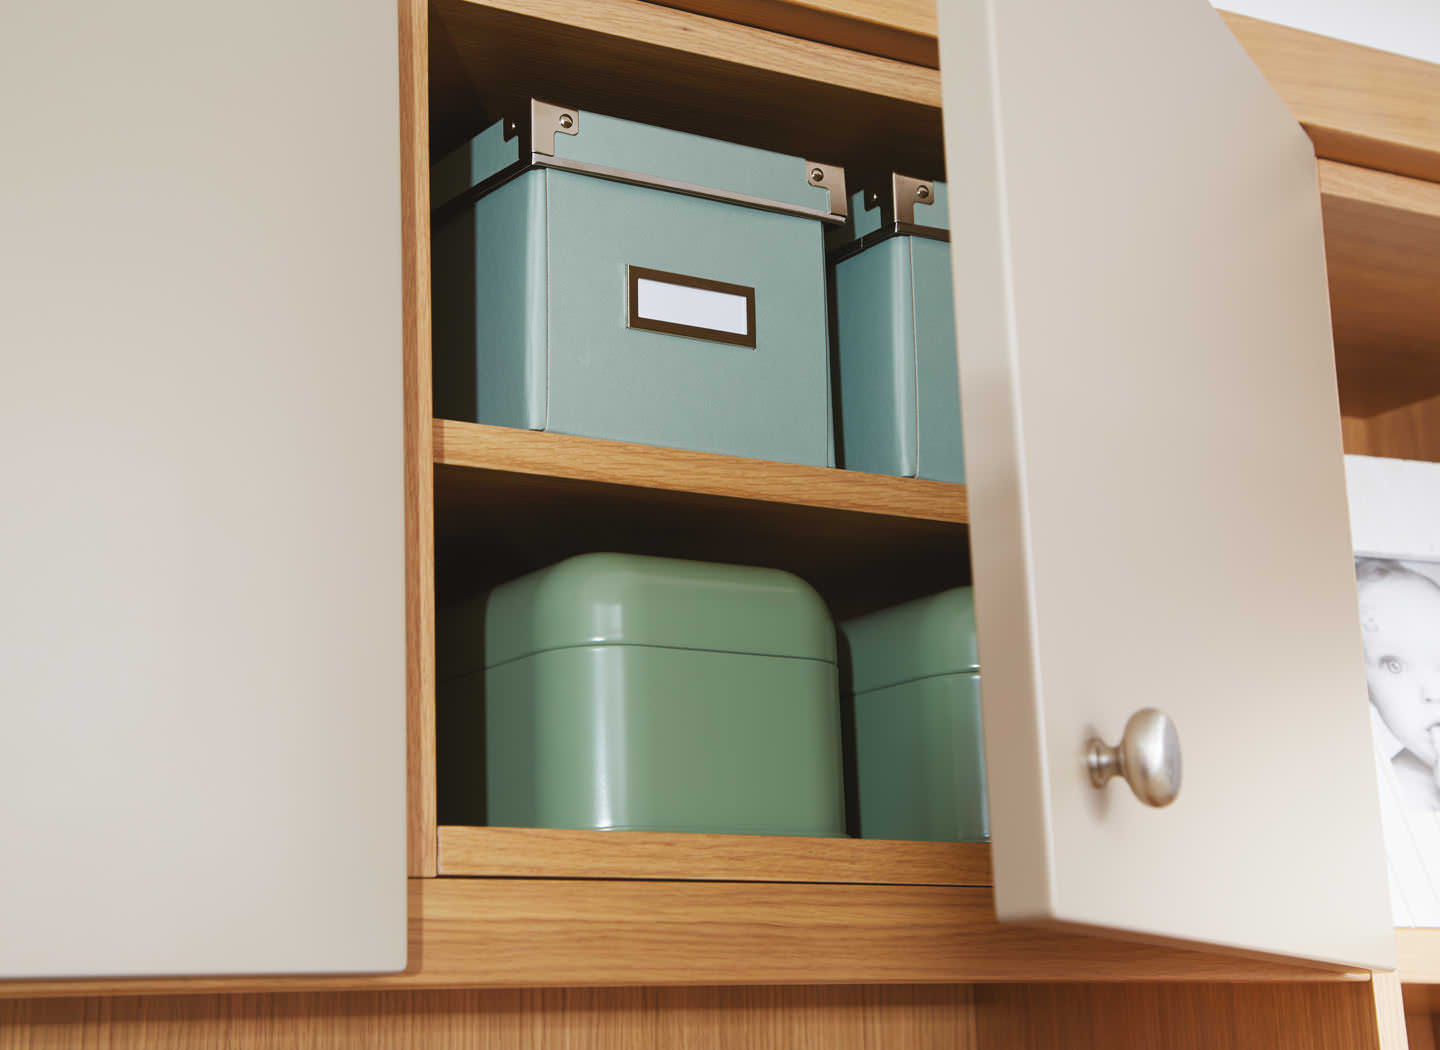 Case study showing fitted cabinets in lounge